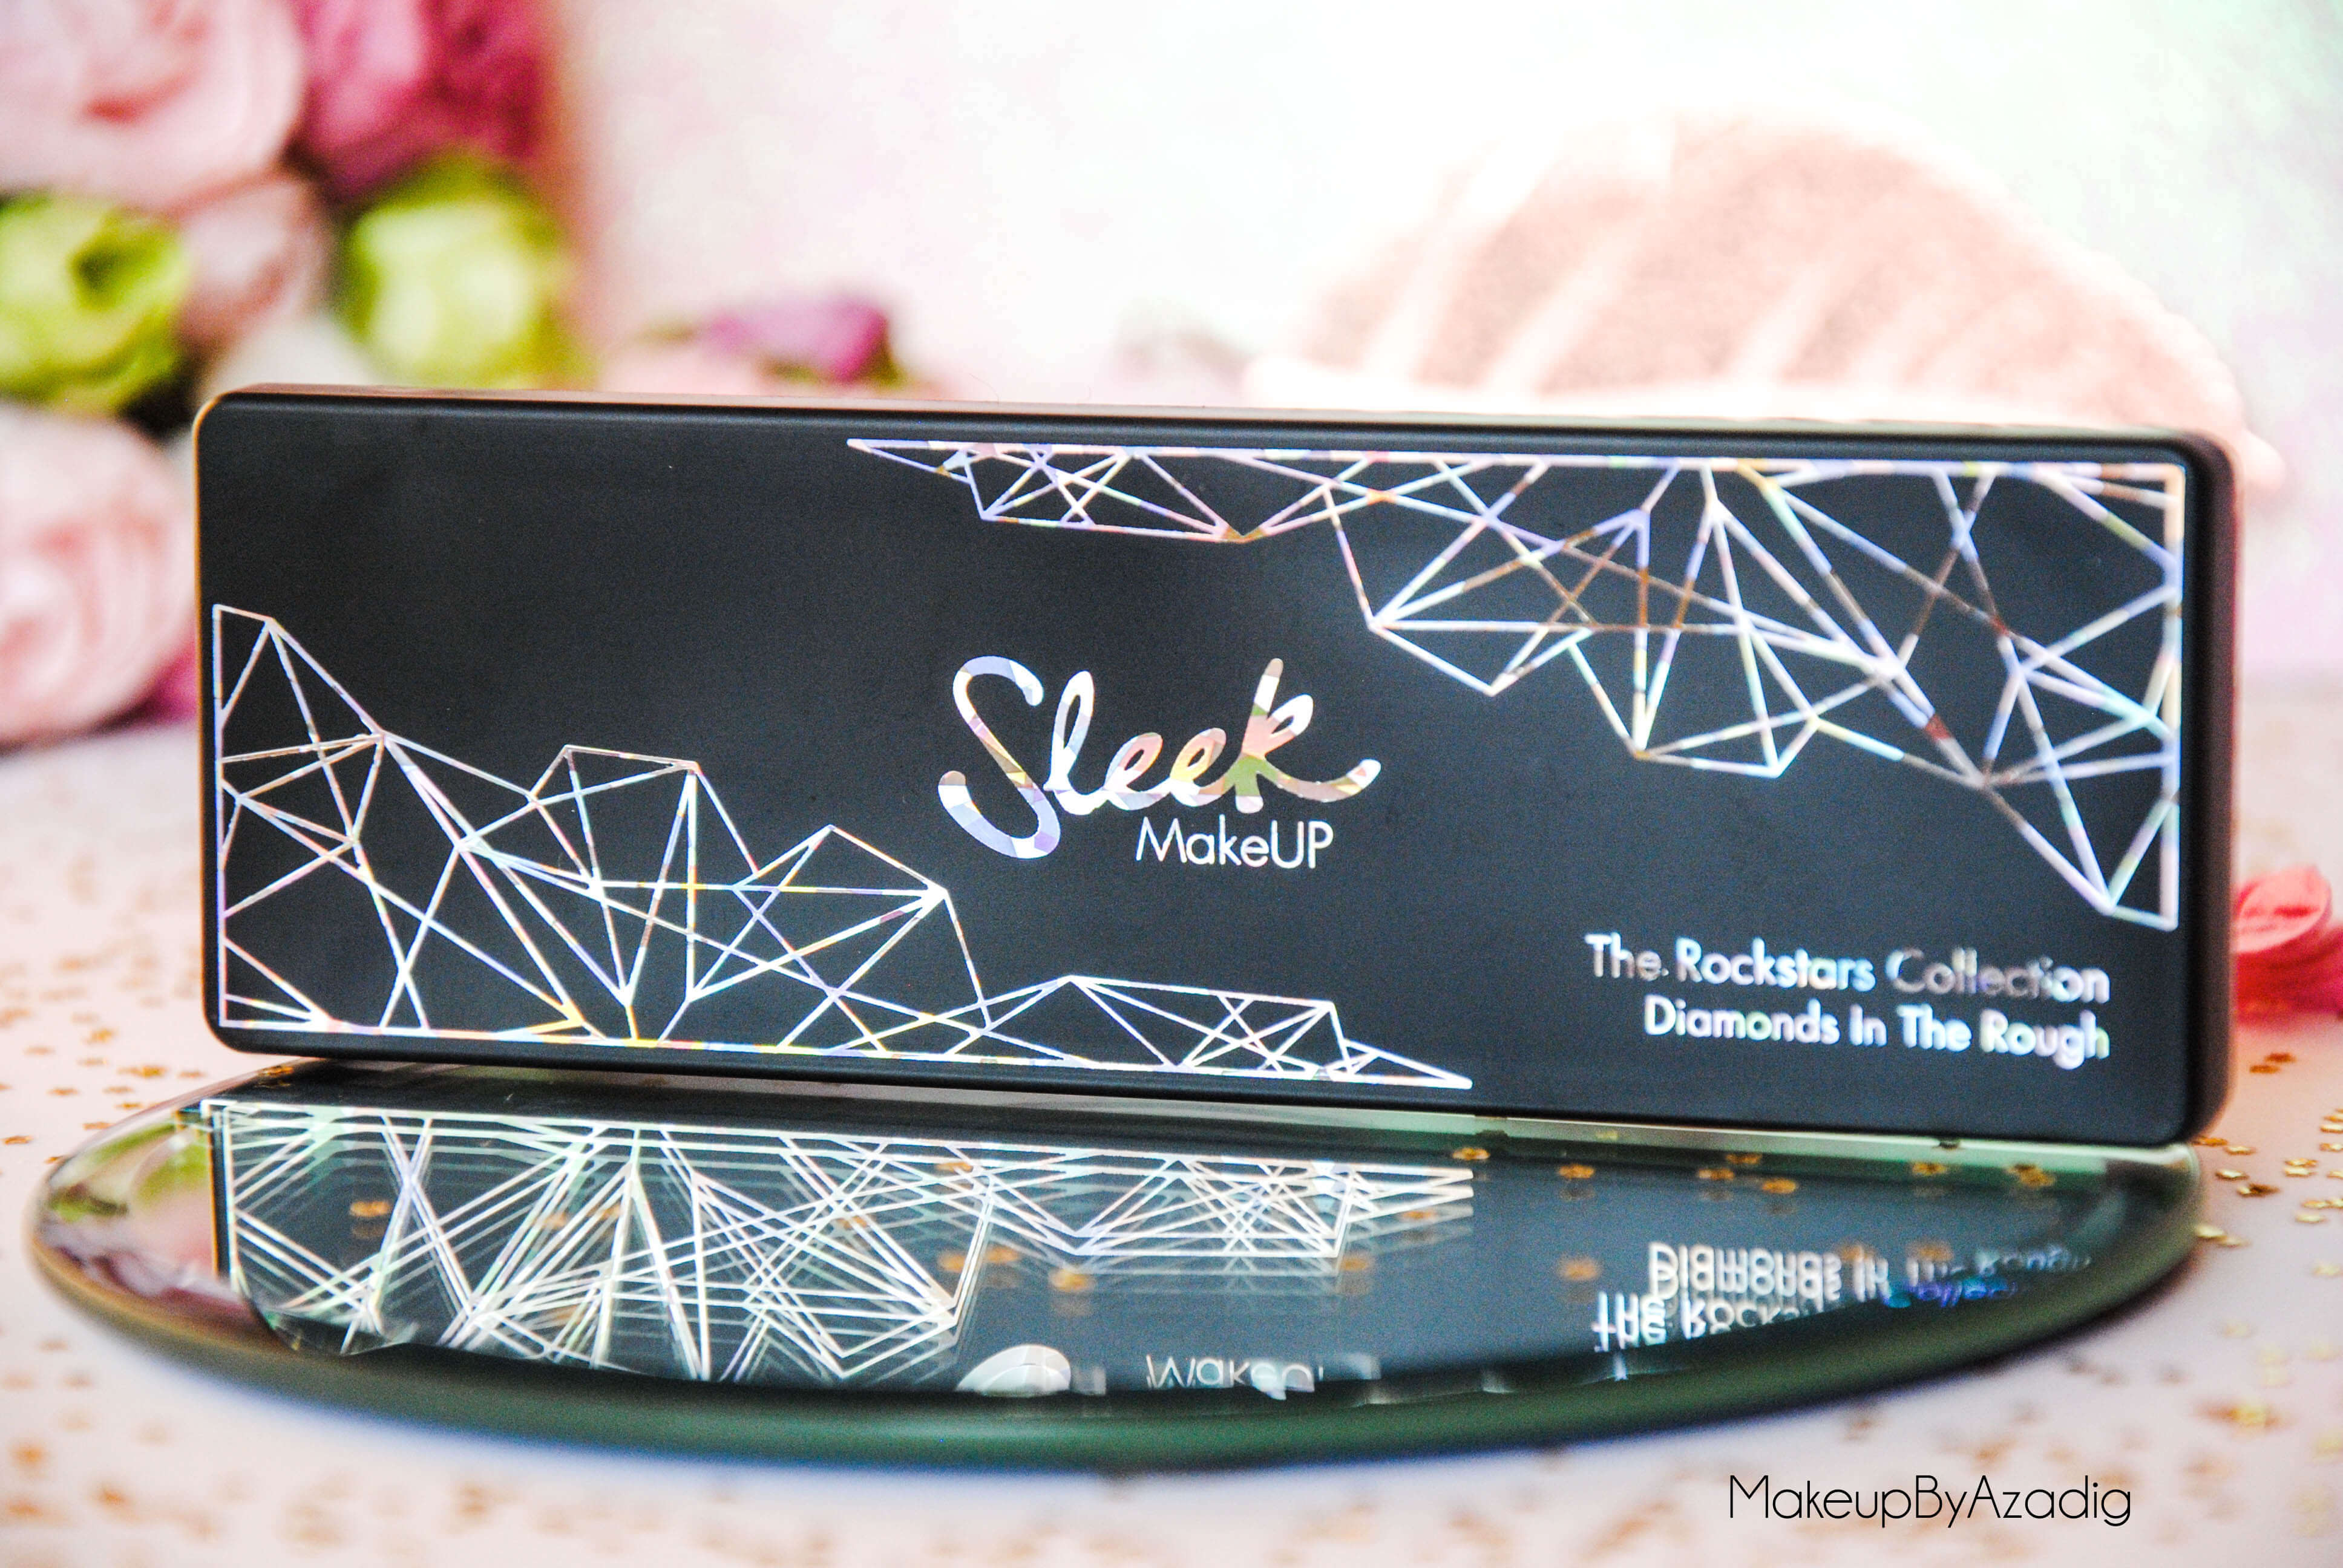 palette-eyeshadow-sleek-makeup-diamonds-in-the-rough-ilust-sephora-paris-makeupbyazadig-noel-code-promo-avis-prix-collection